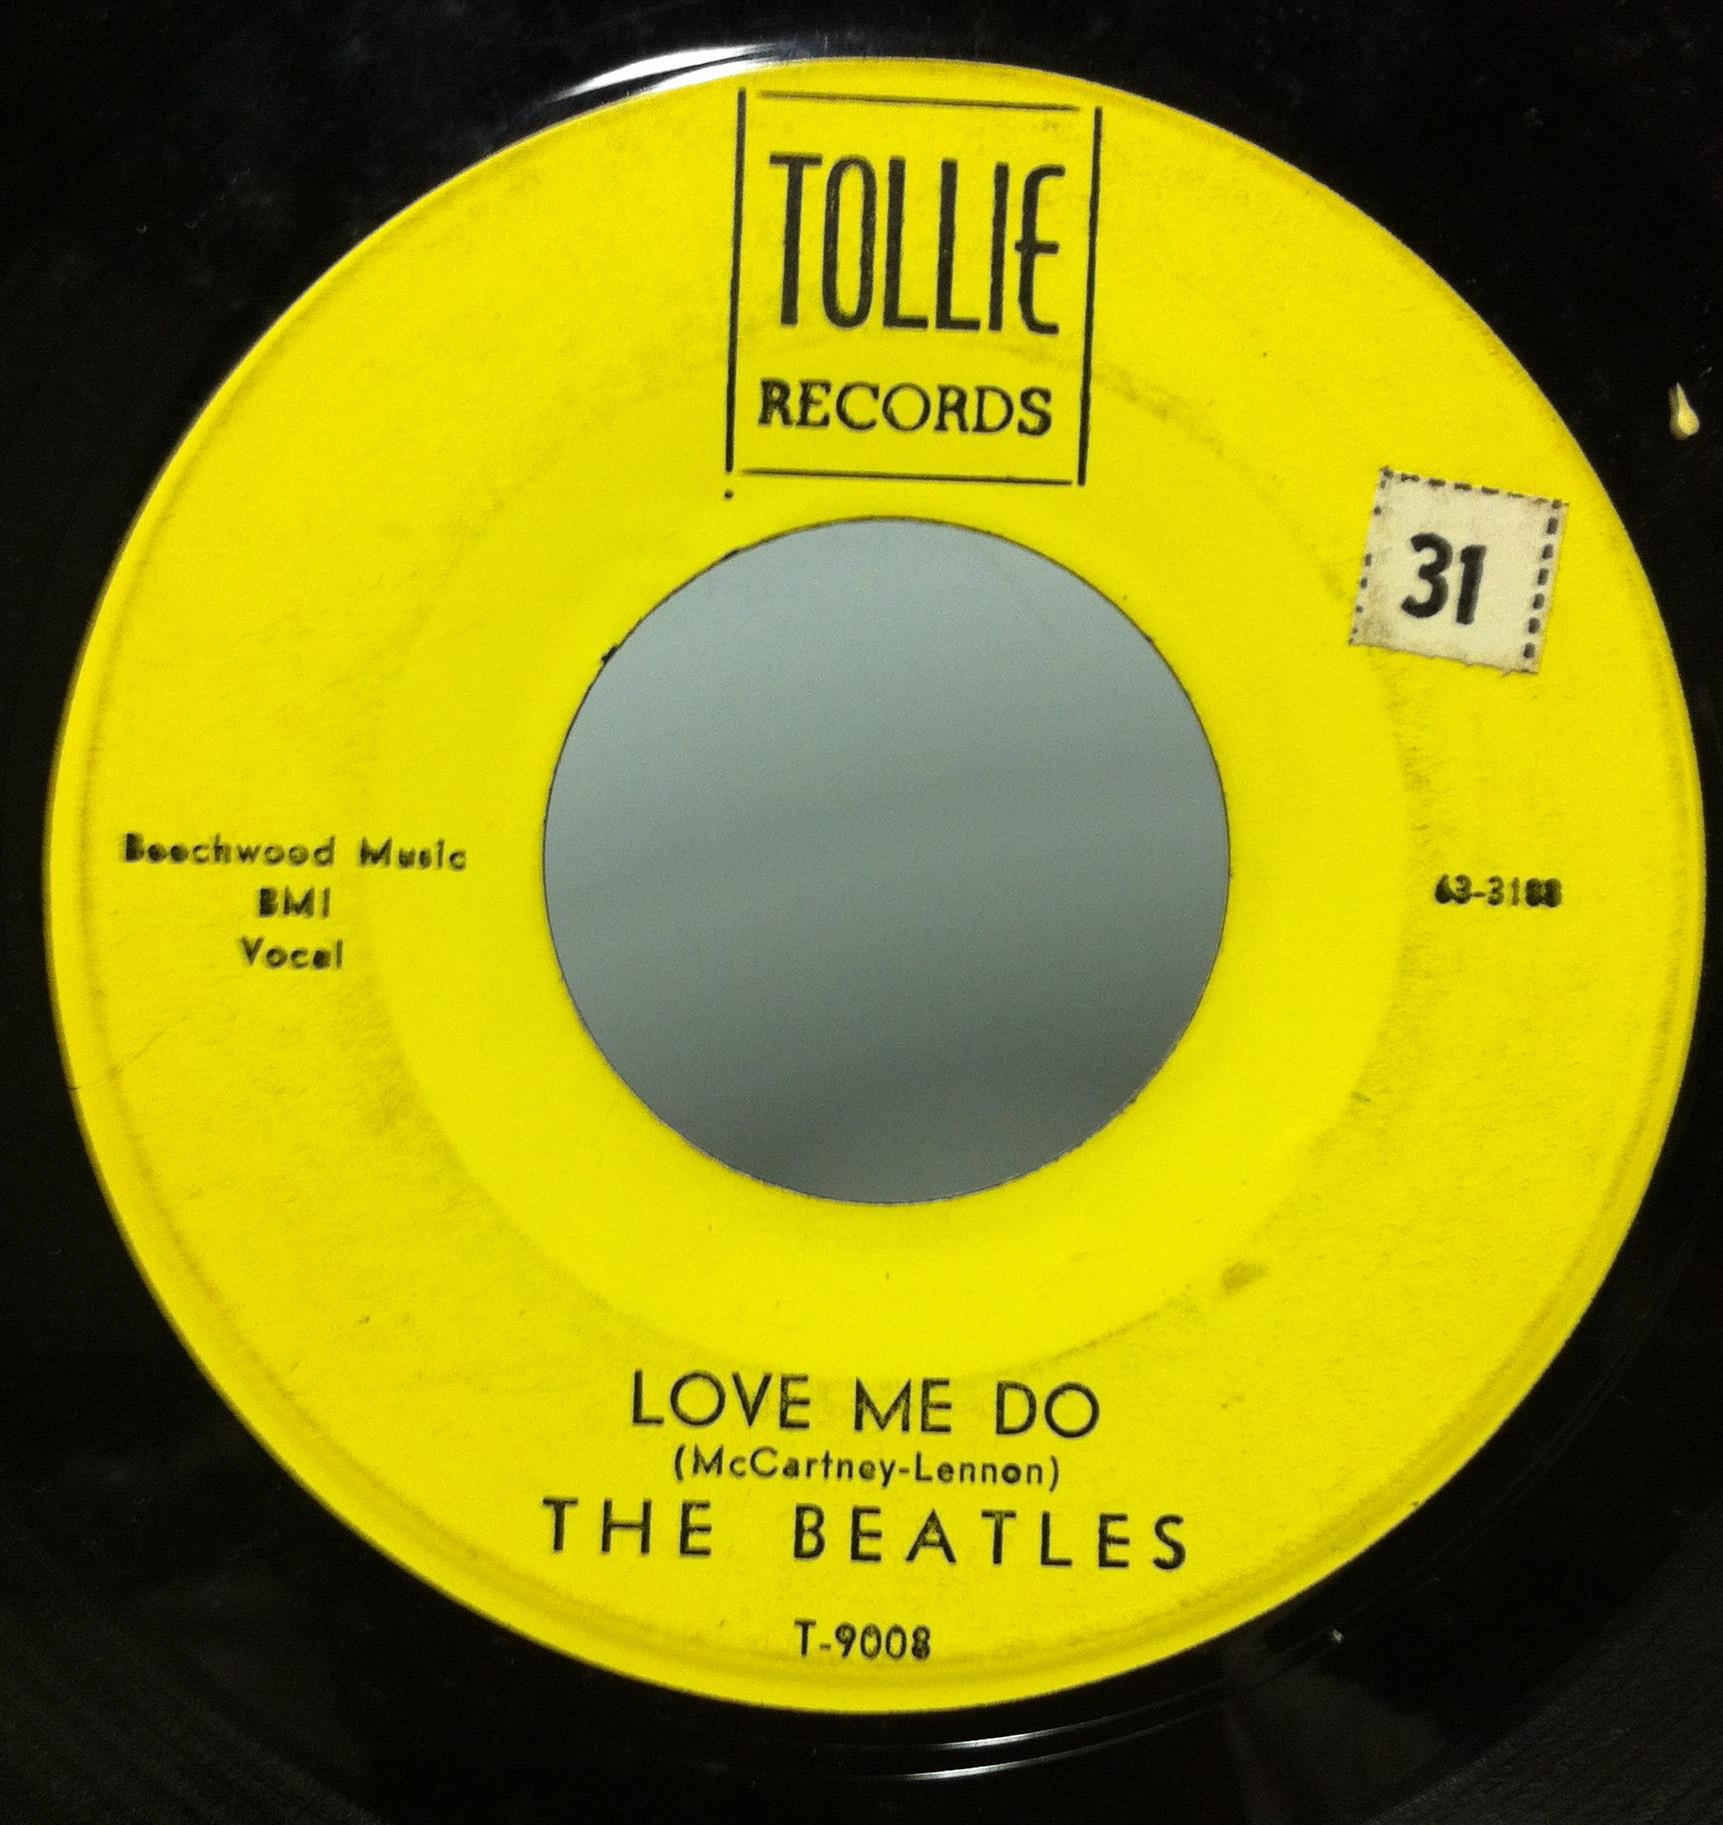 "BEATLES - The Beatles Love Me Do / P.s. I Love You 7"" Vg+ T-9008 Tollie 1964 Record (love Me Do / P.s. I"